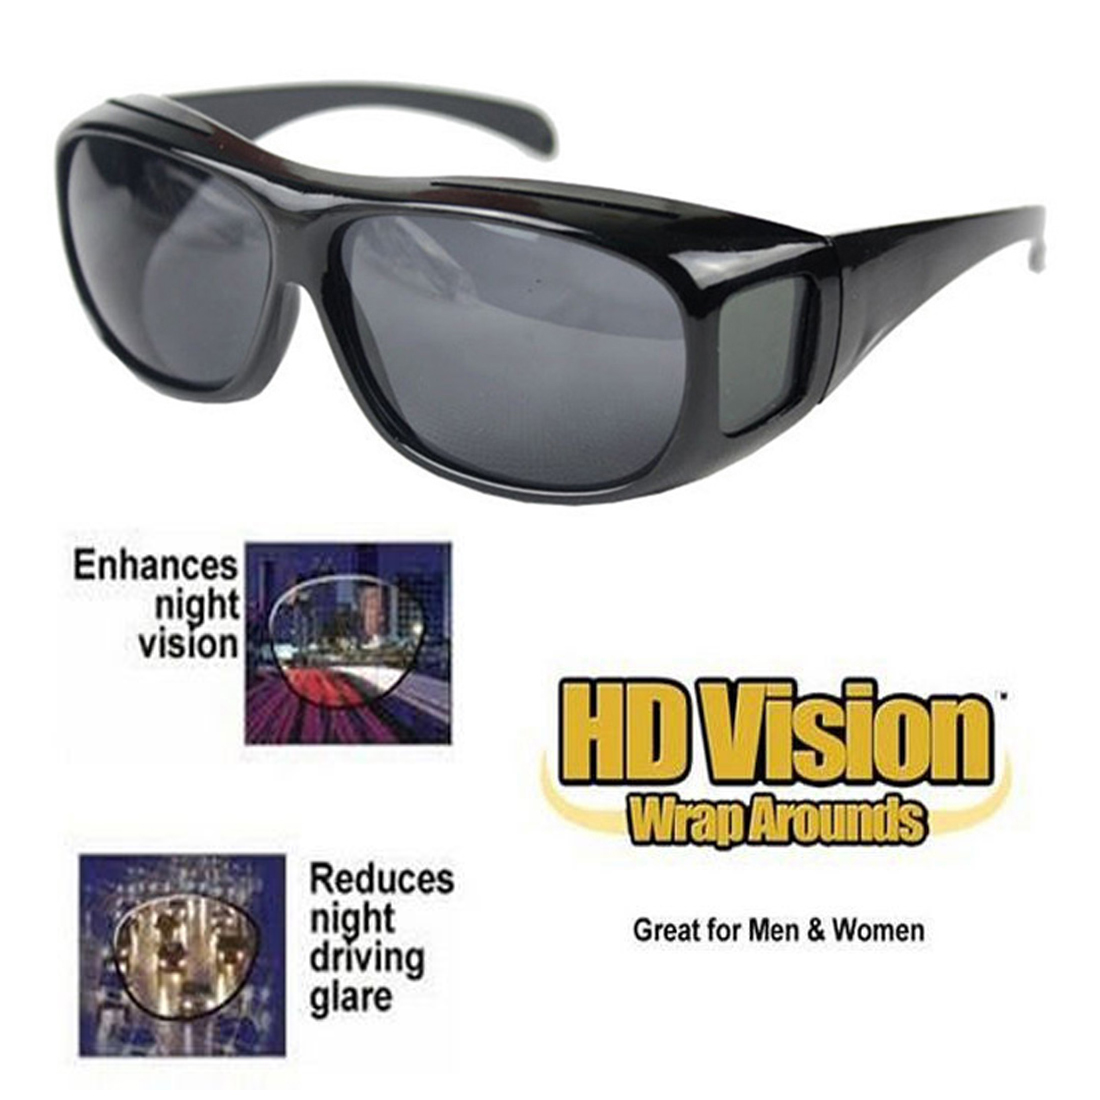 e92efcafe9 Unisex HD Vision Driving Sunglasses Wrap Around Glasses As Seen TV Anti  Glare UV